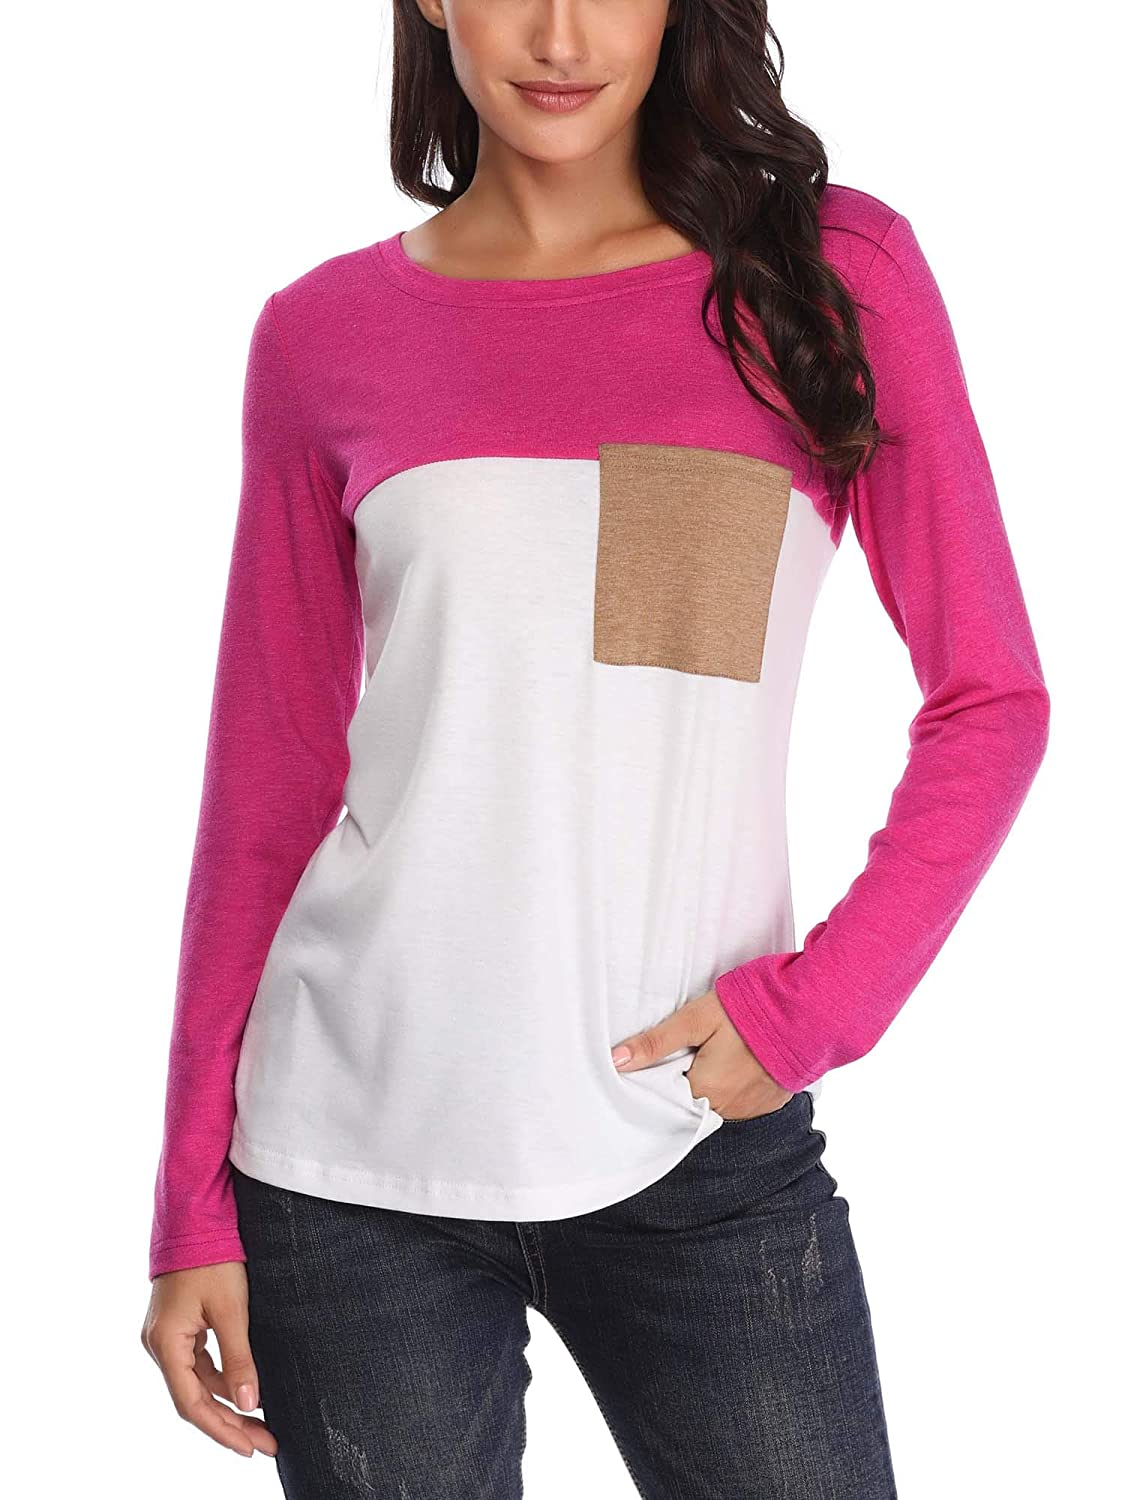 VETIOR Casual Round Neck T Shirt for Women Long Sleeve Trendy Top Hot Pink M